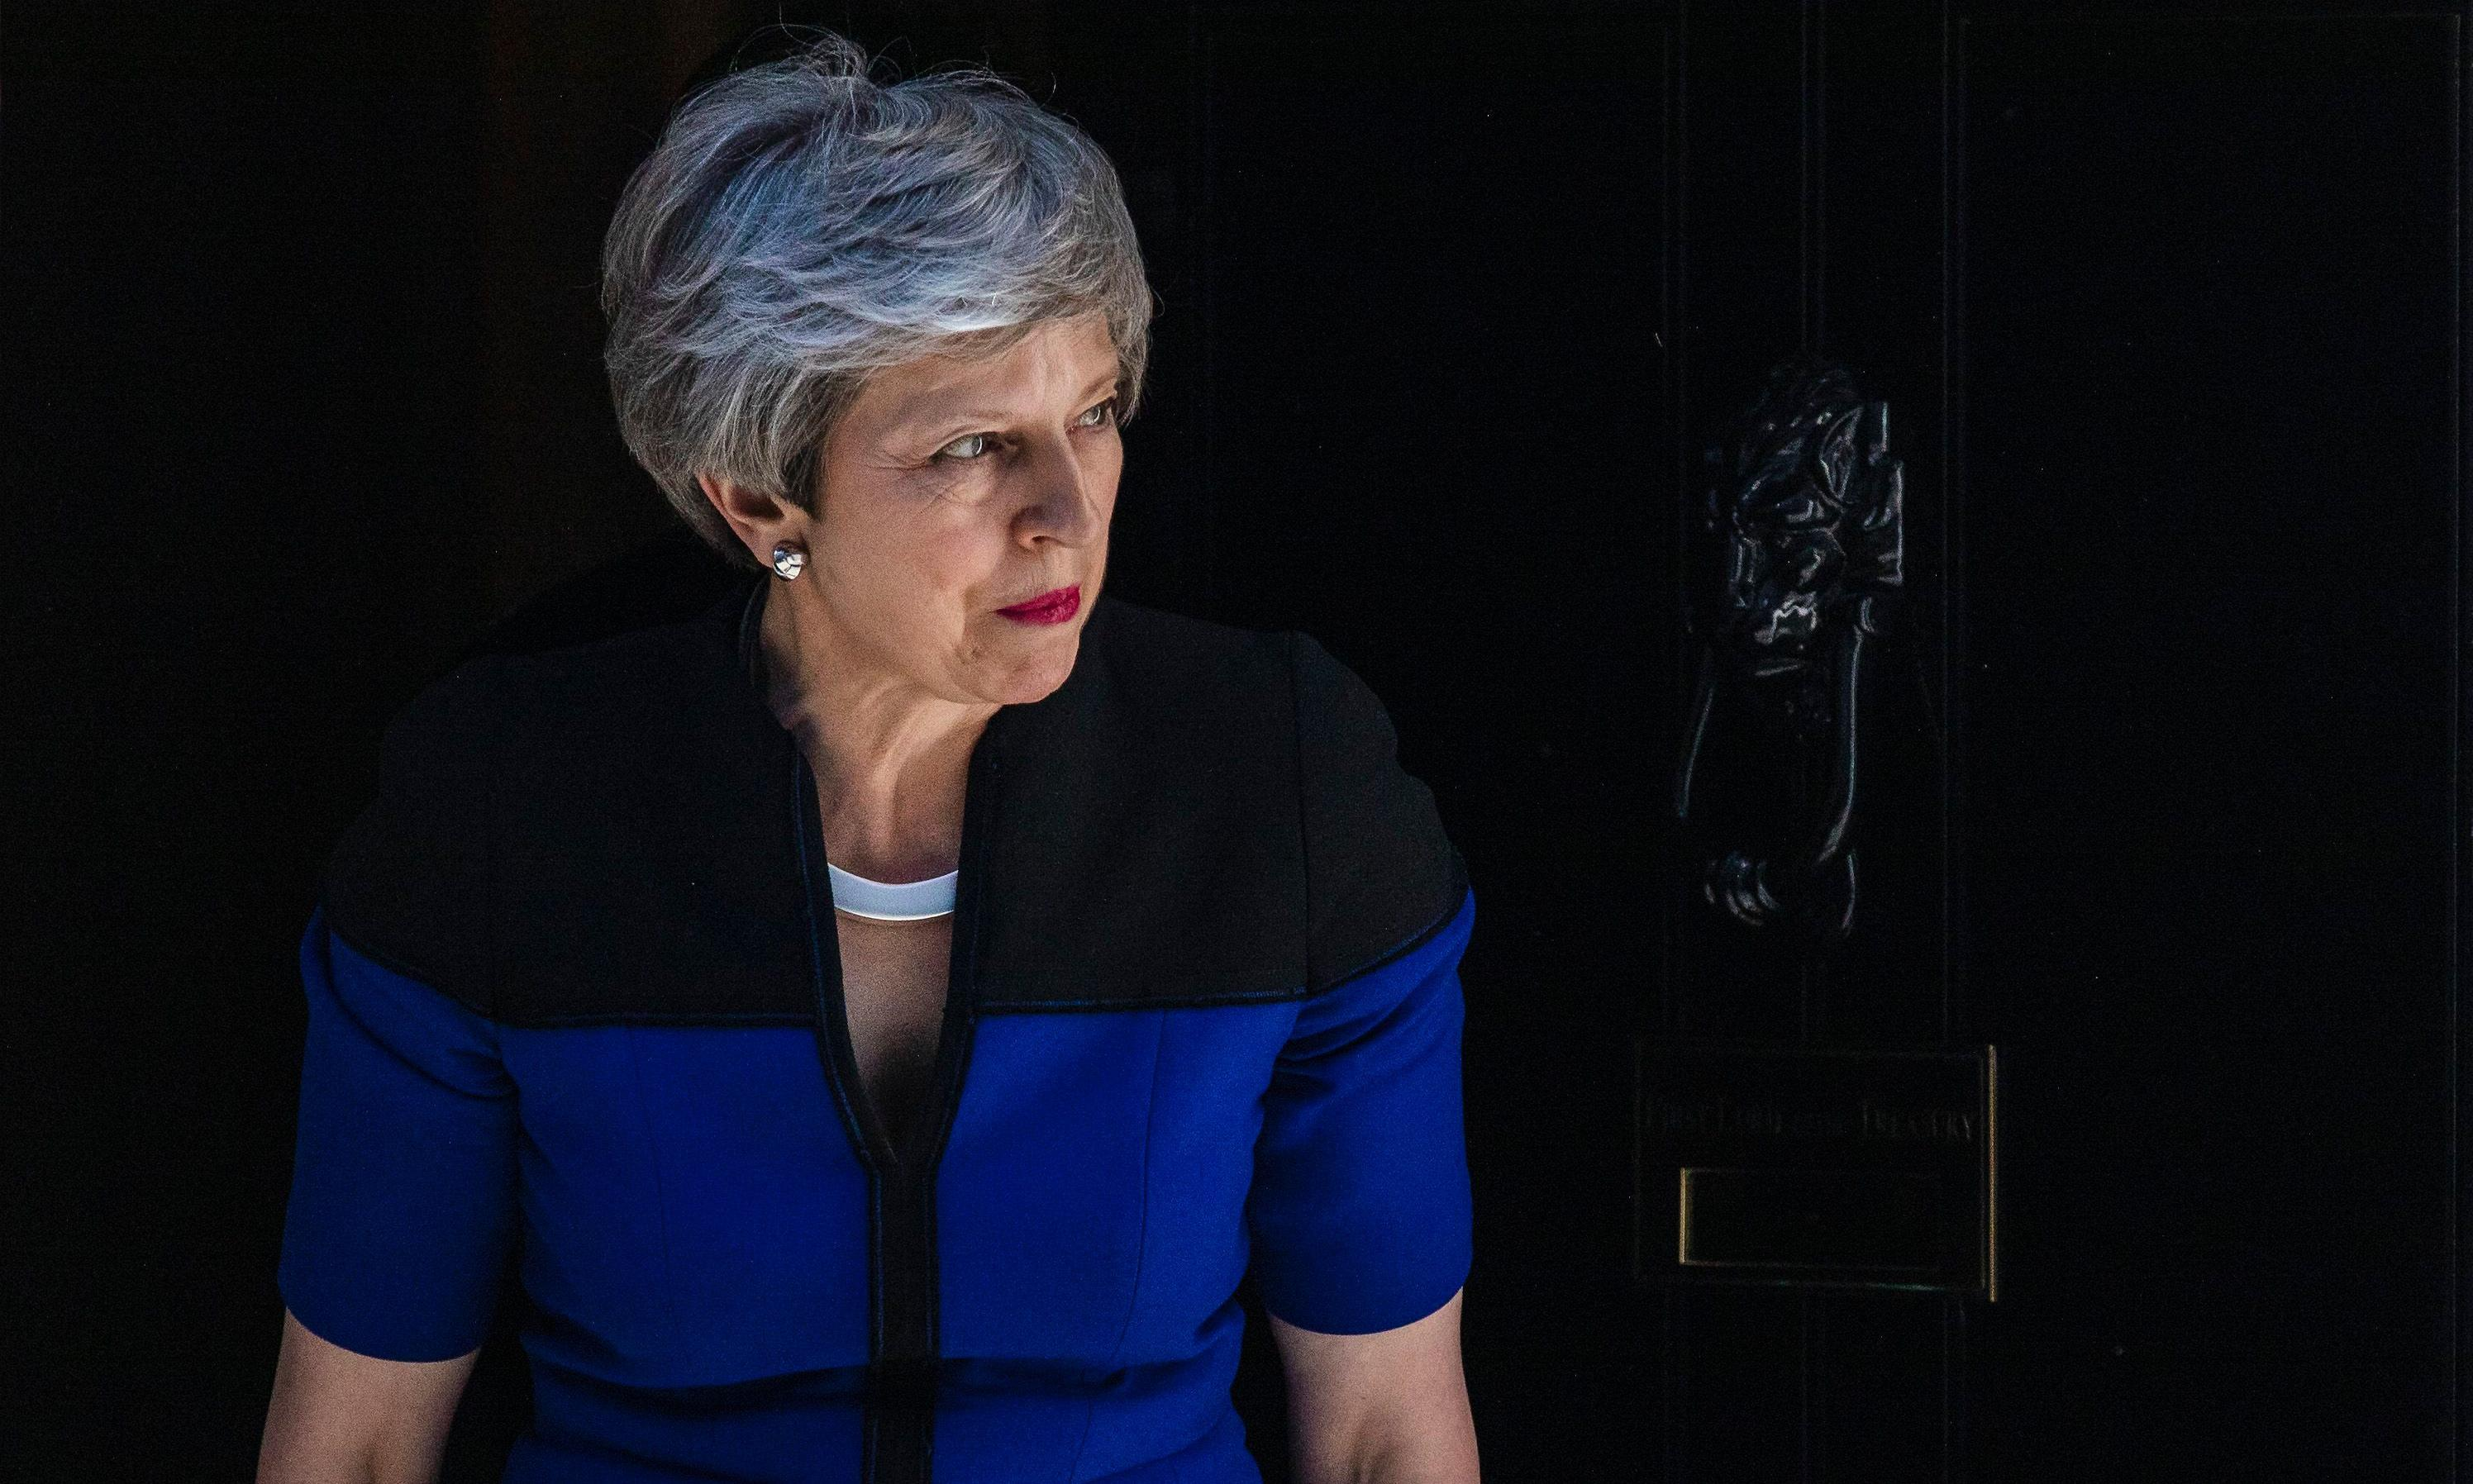 Tories scrabble for new Brexit vision in place of Theresa May's 'doomed' plan